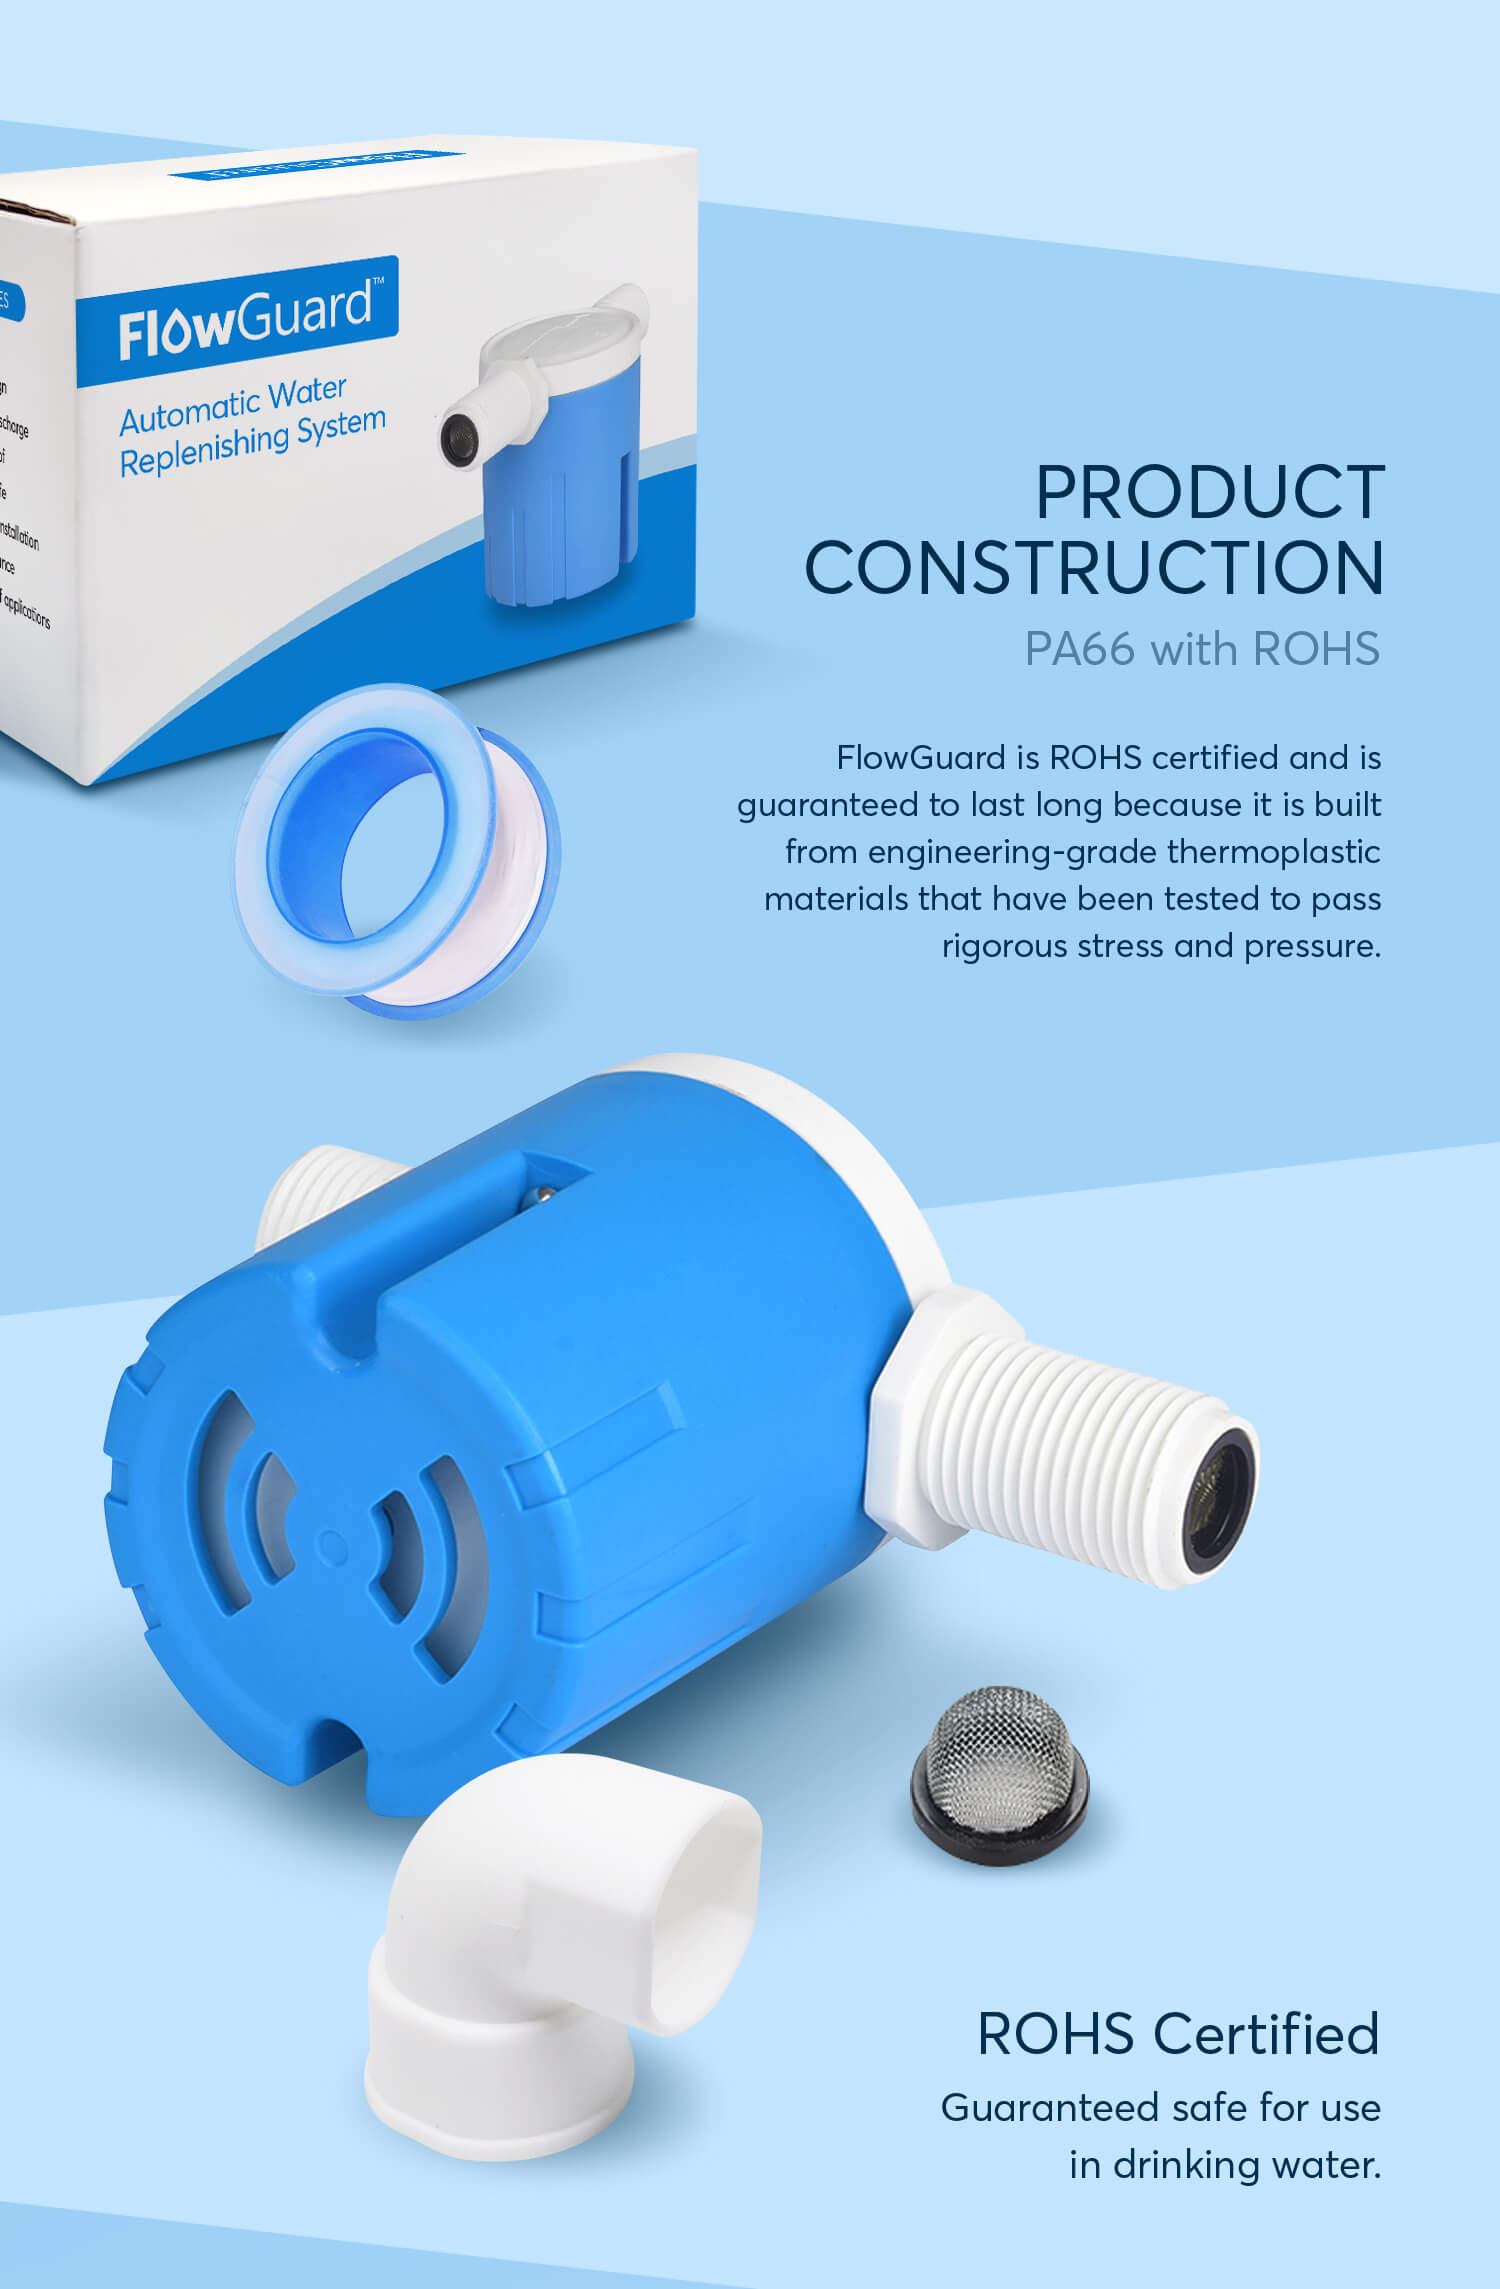 FlowGuard - Automatic Water Replenishing System, Float Valve, Automatic Water Level Control Valve